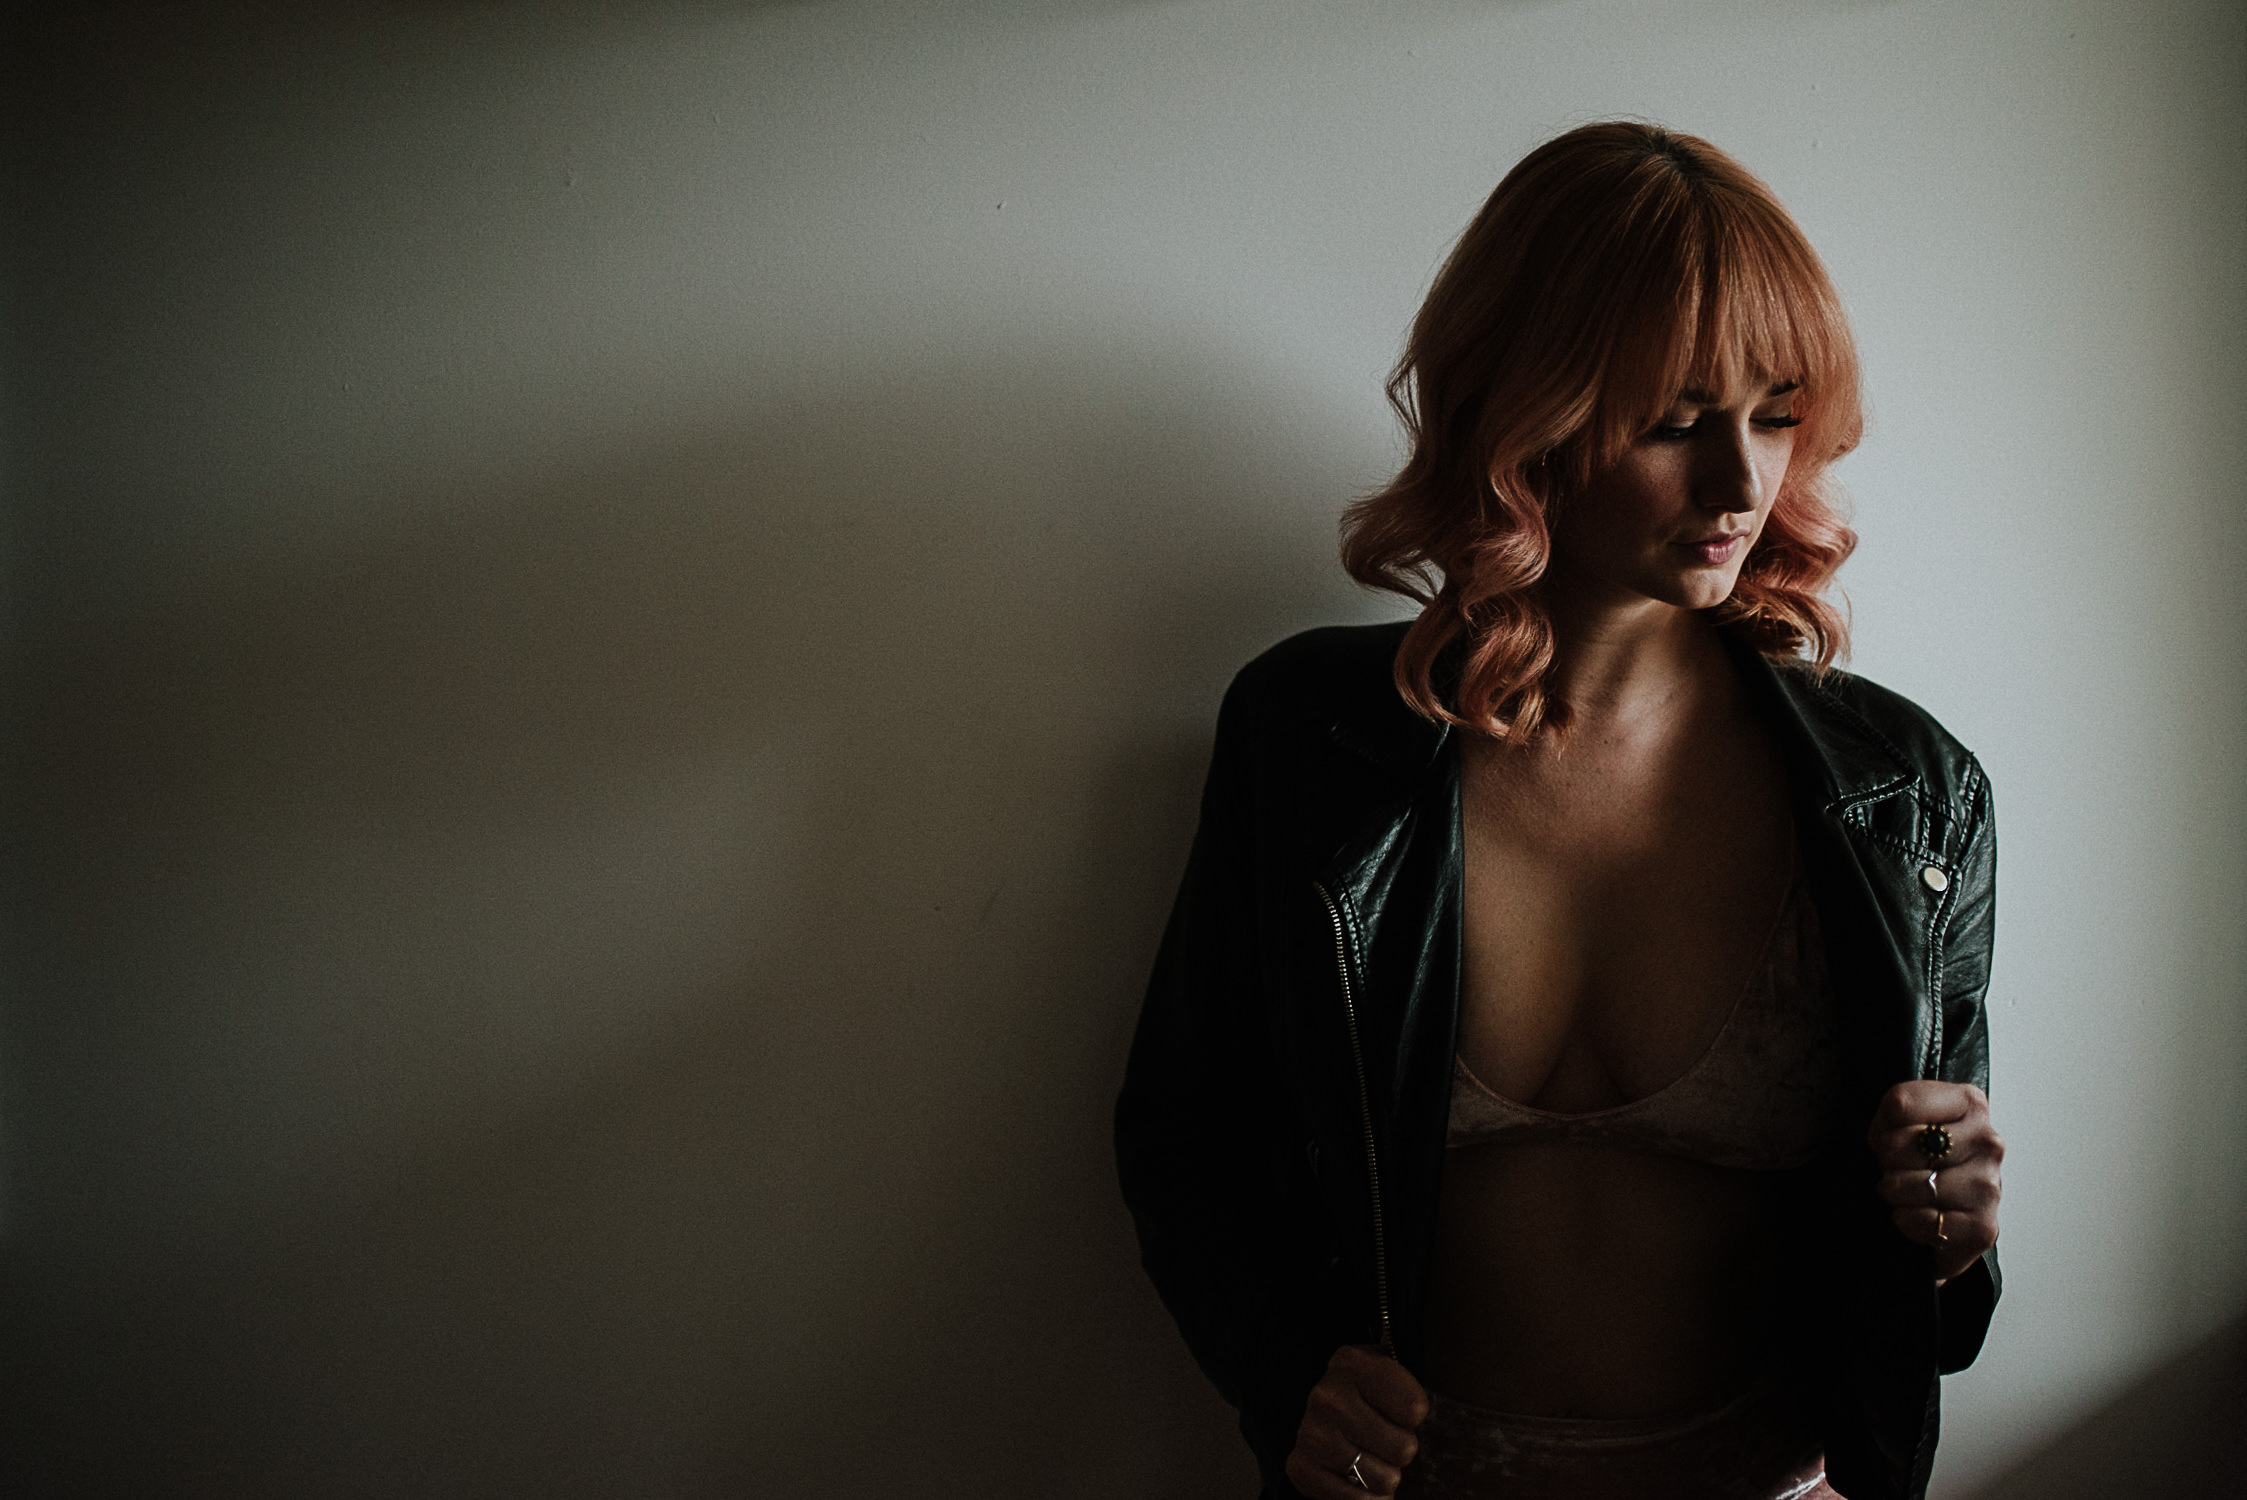 photo of woman with pink hair in dramatic lighting by Vancouver portrait photographer Ronnie Lee Hill